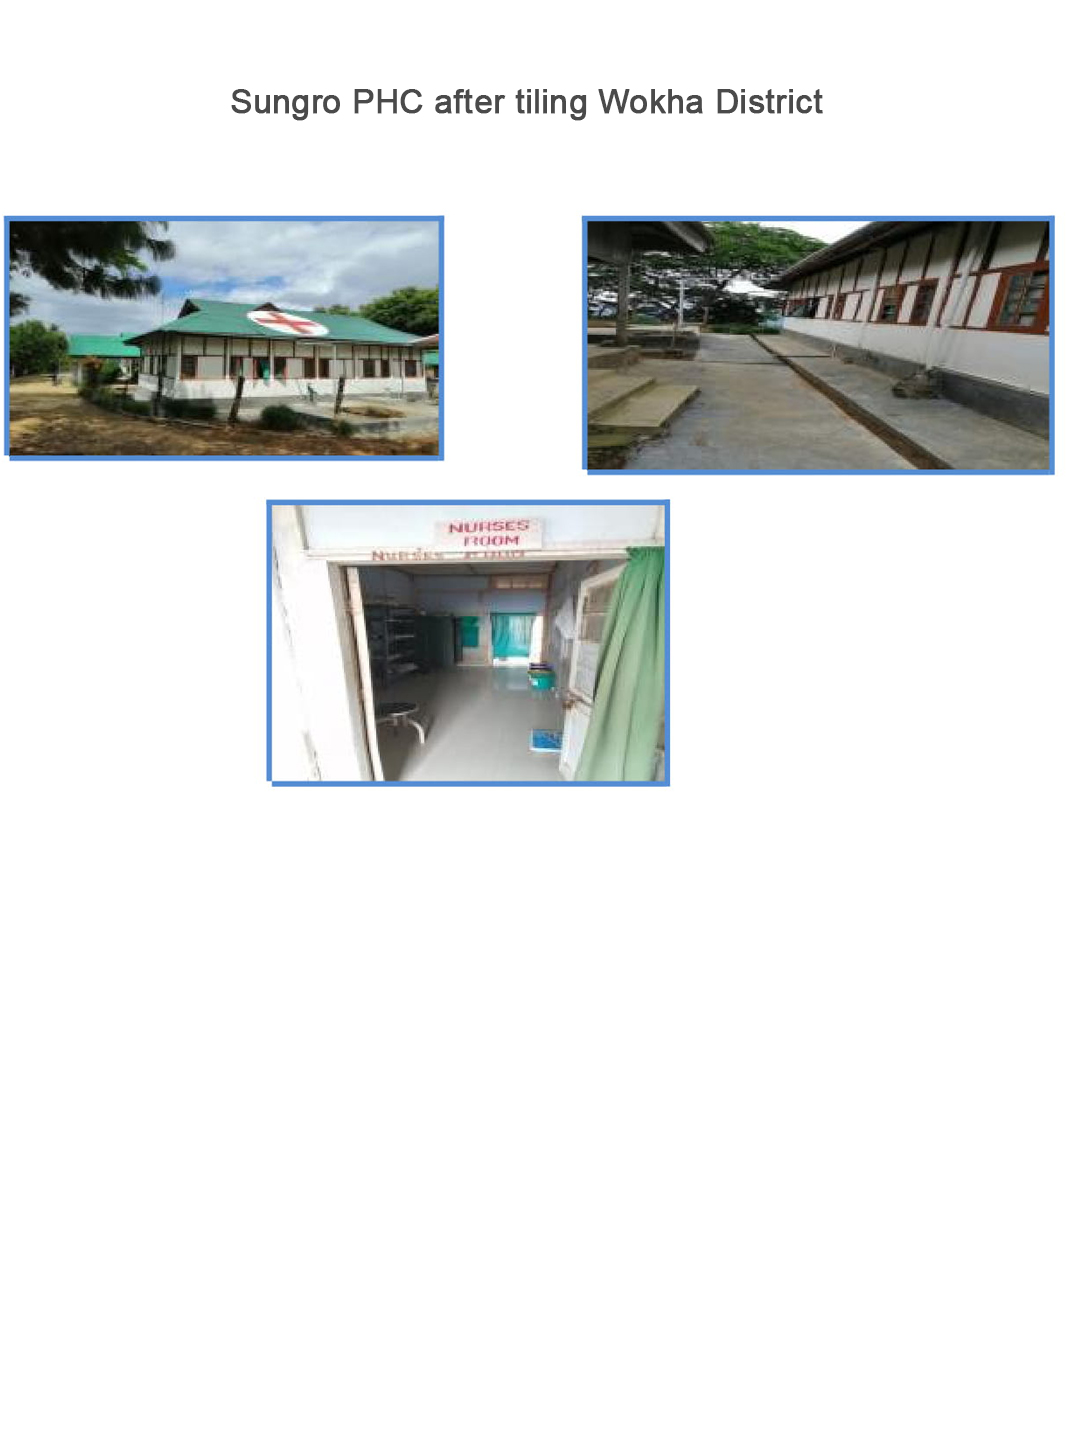 Sungro-PHC-after-tiling-Wokha-District